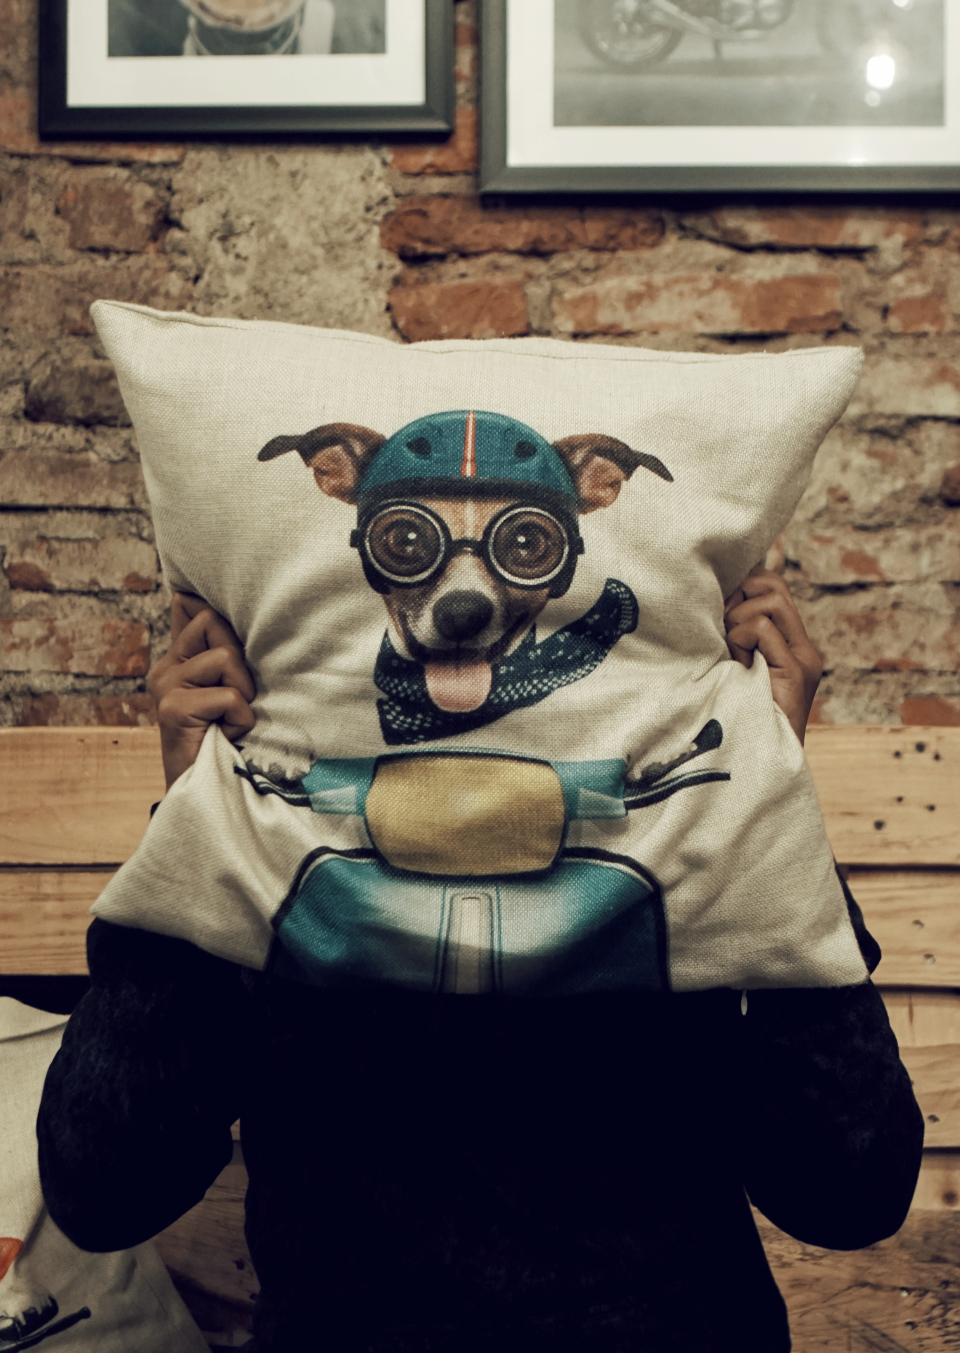 dog cushion man happy goggles brick wall rustic pillow home house smile motorbike bike